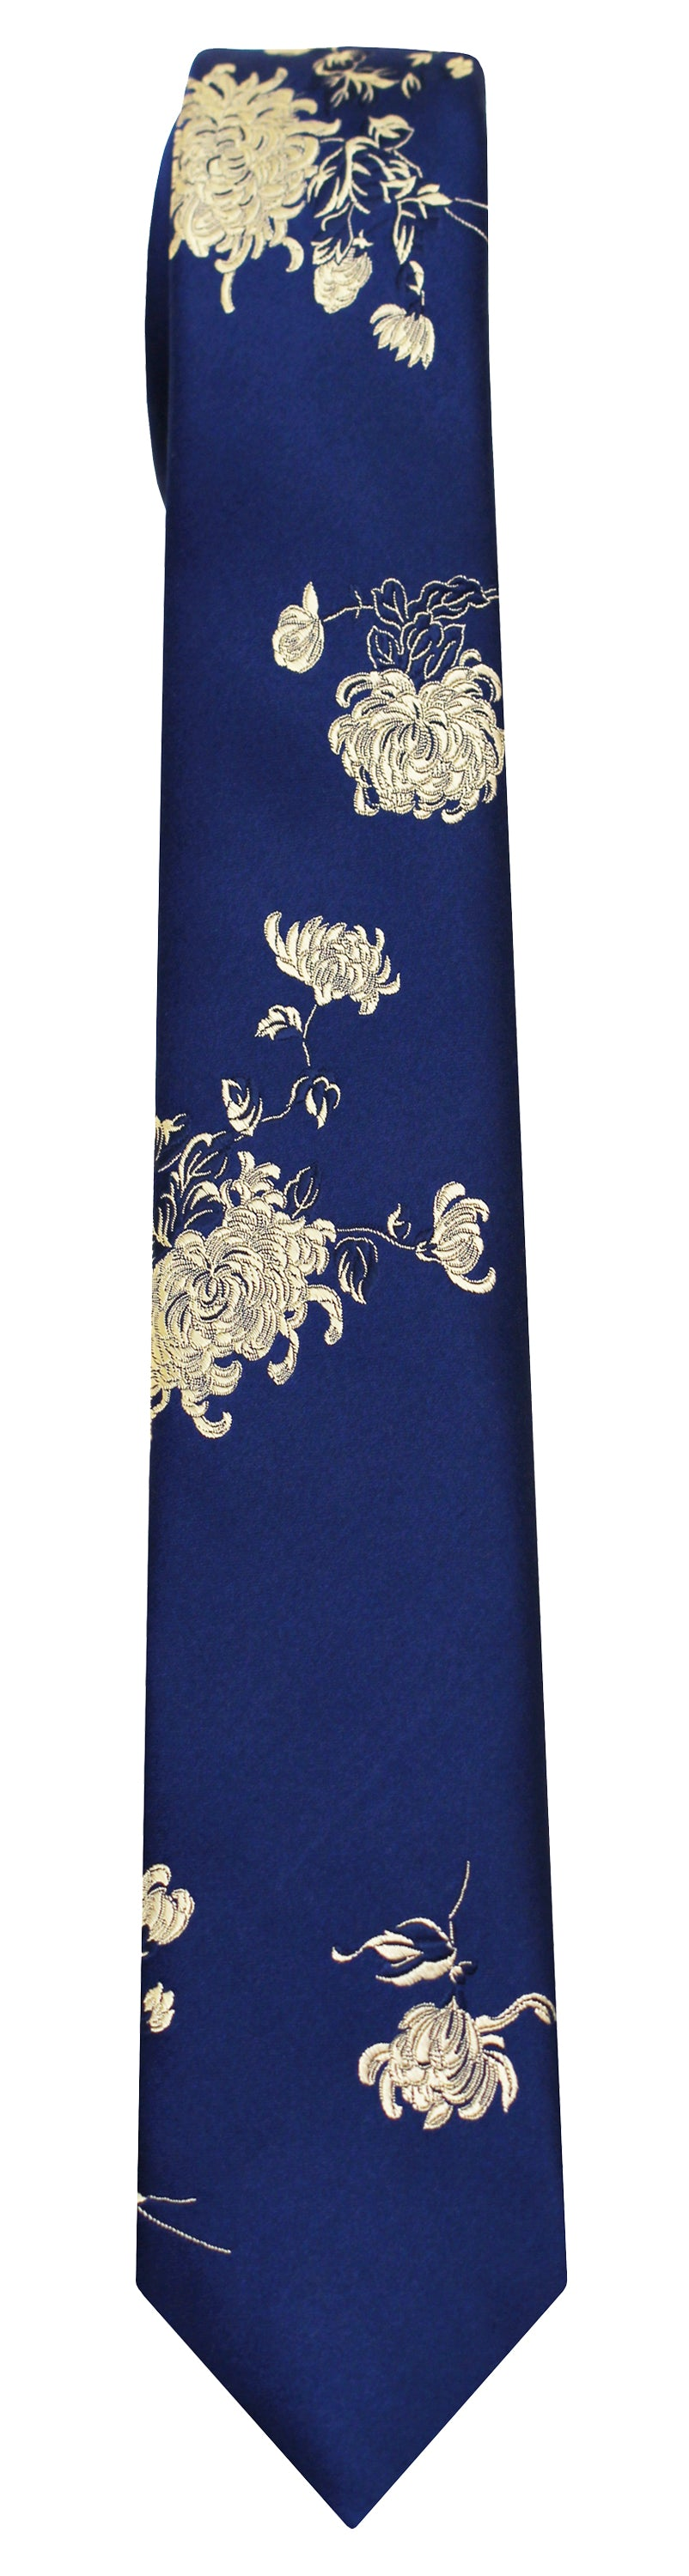 Mimi Fong Chrysanthemum Tie in Royal